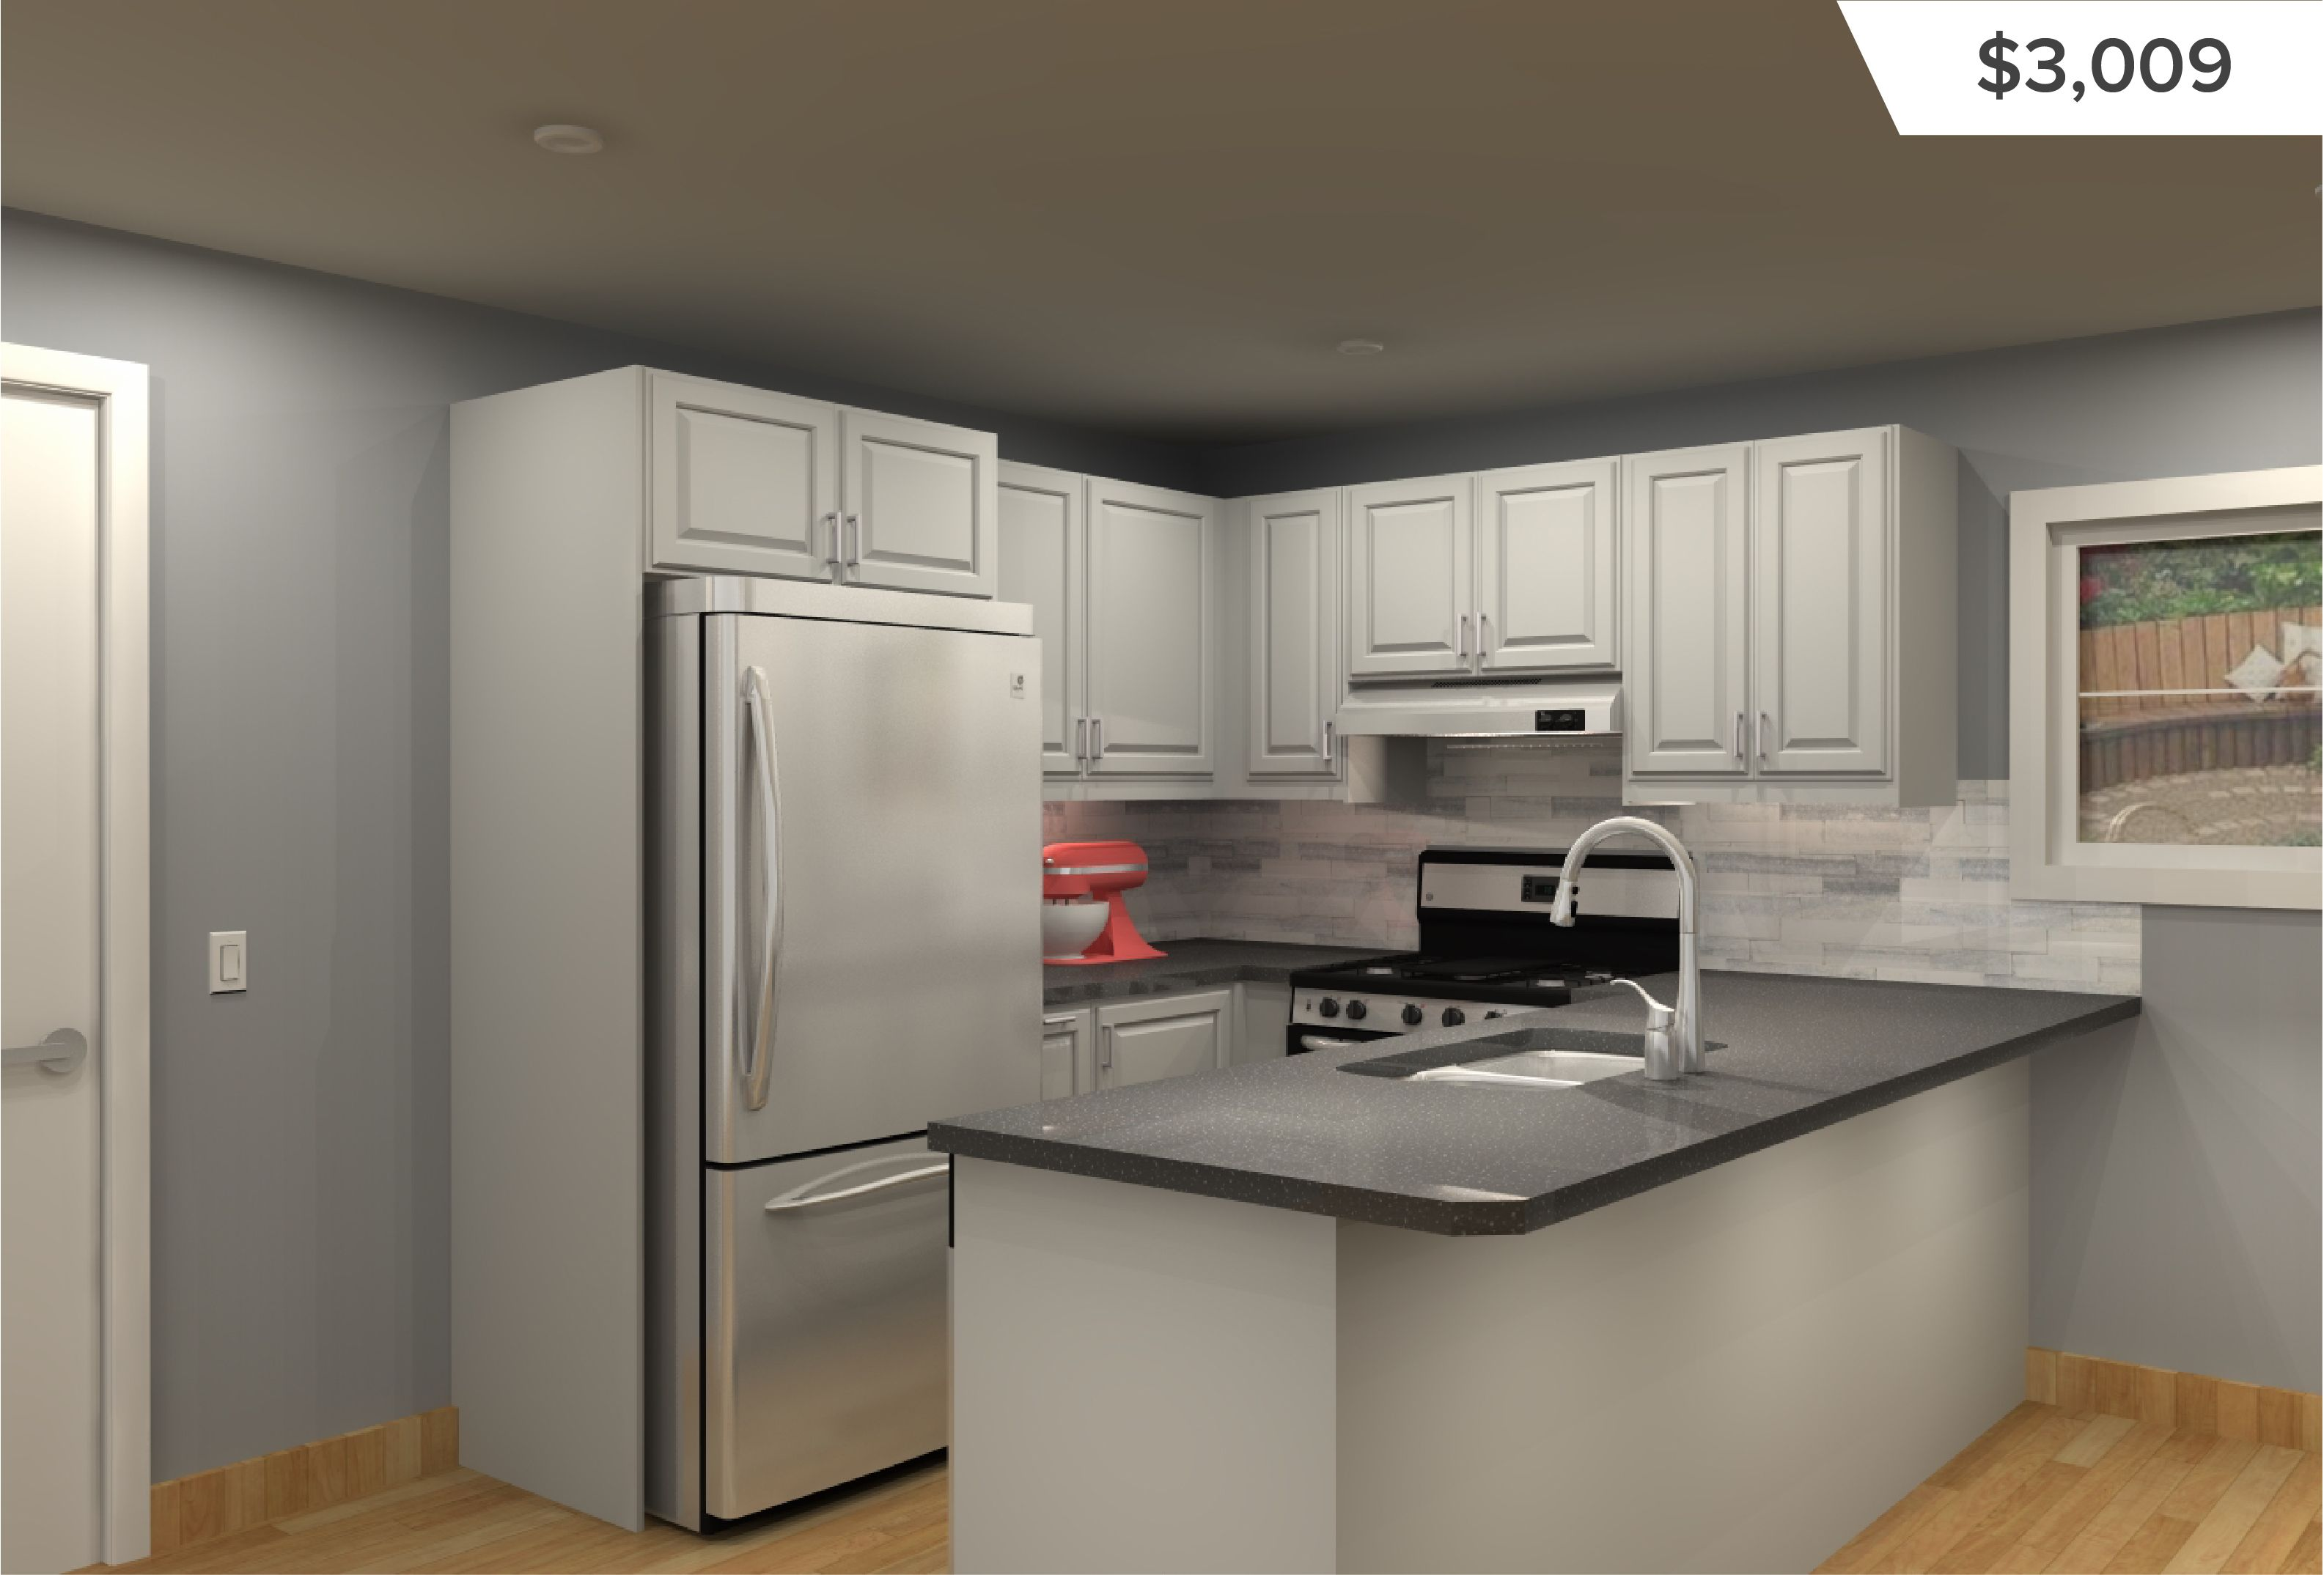 Home | Ikea kitchen cabinets, Kitchen remodel small ...